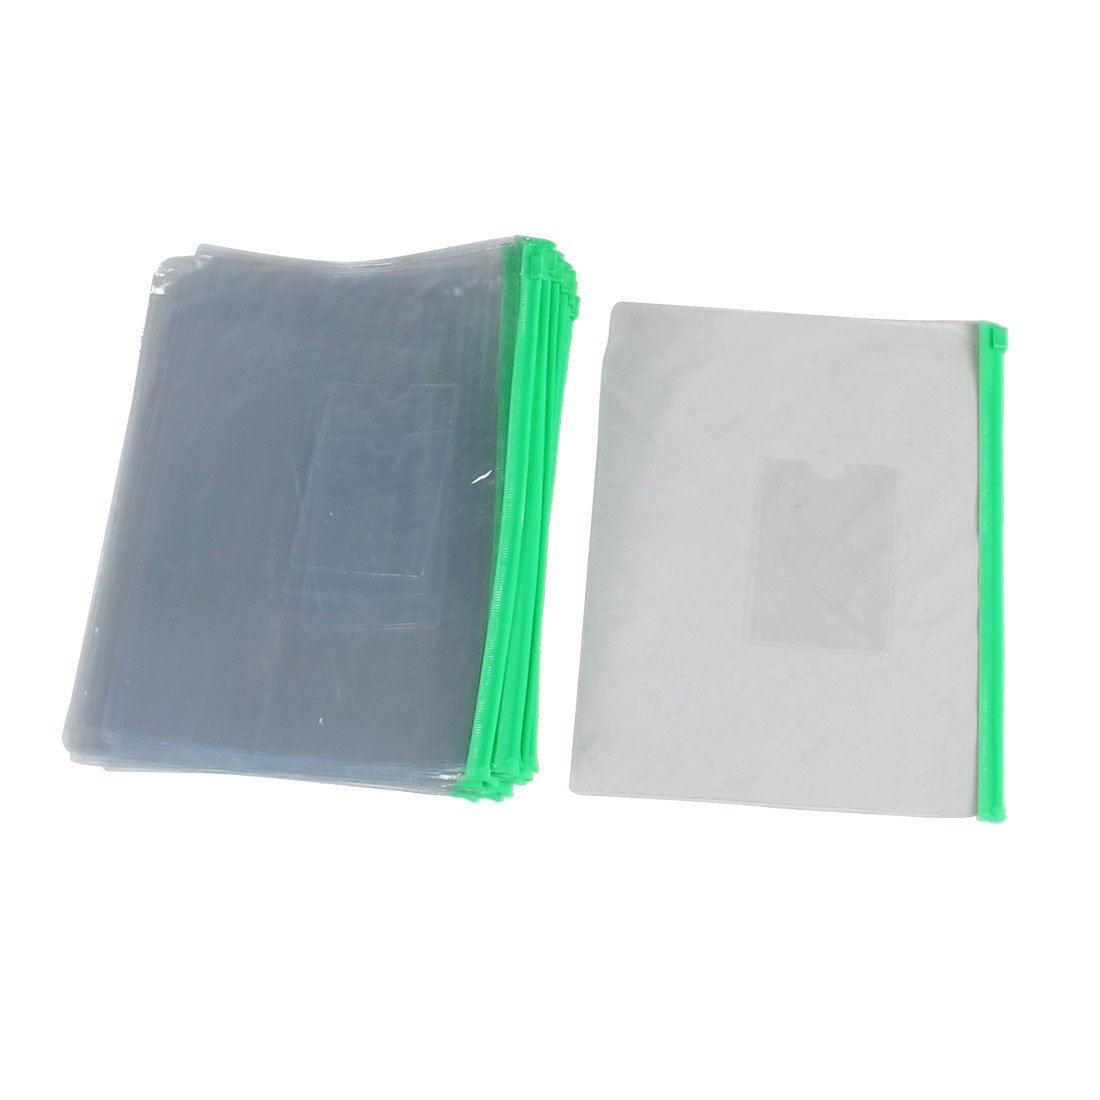 SOSW-20 Pcs Green Clear Size A5 Paper Slider Ziplock Closure Files Bags